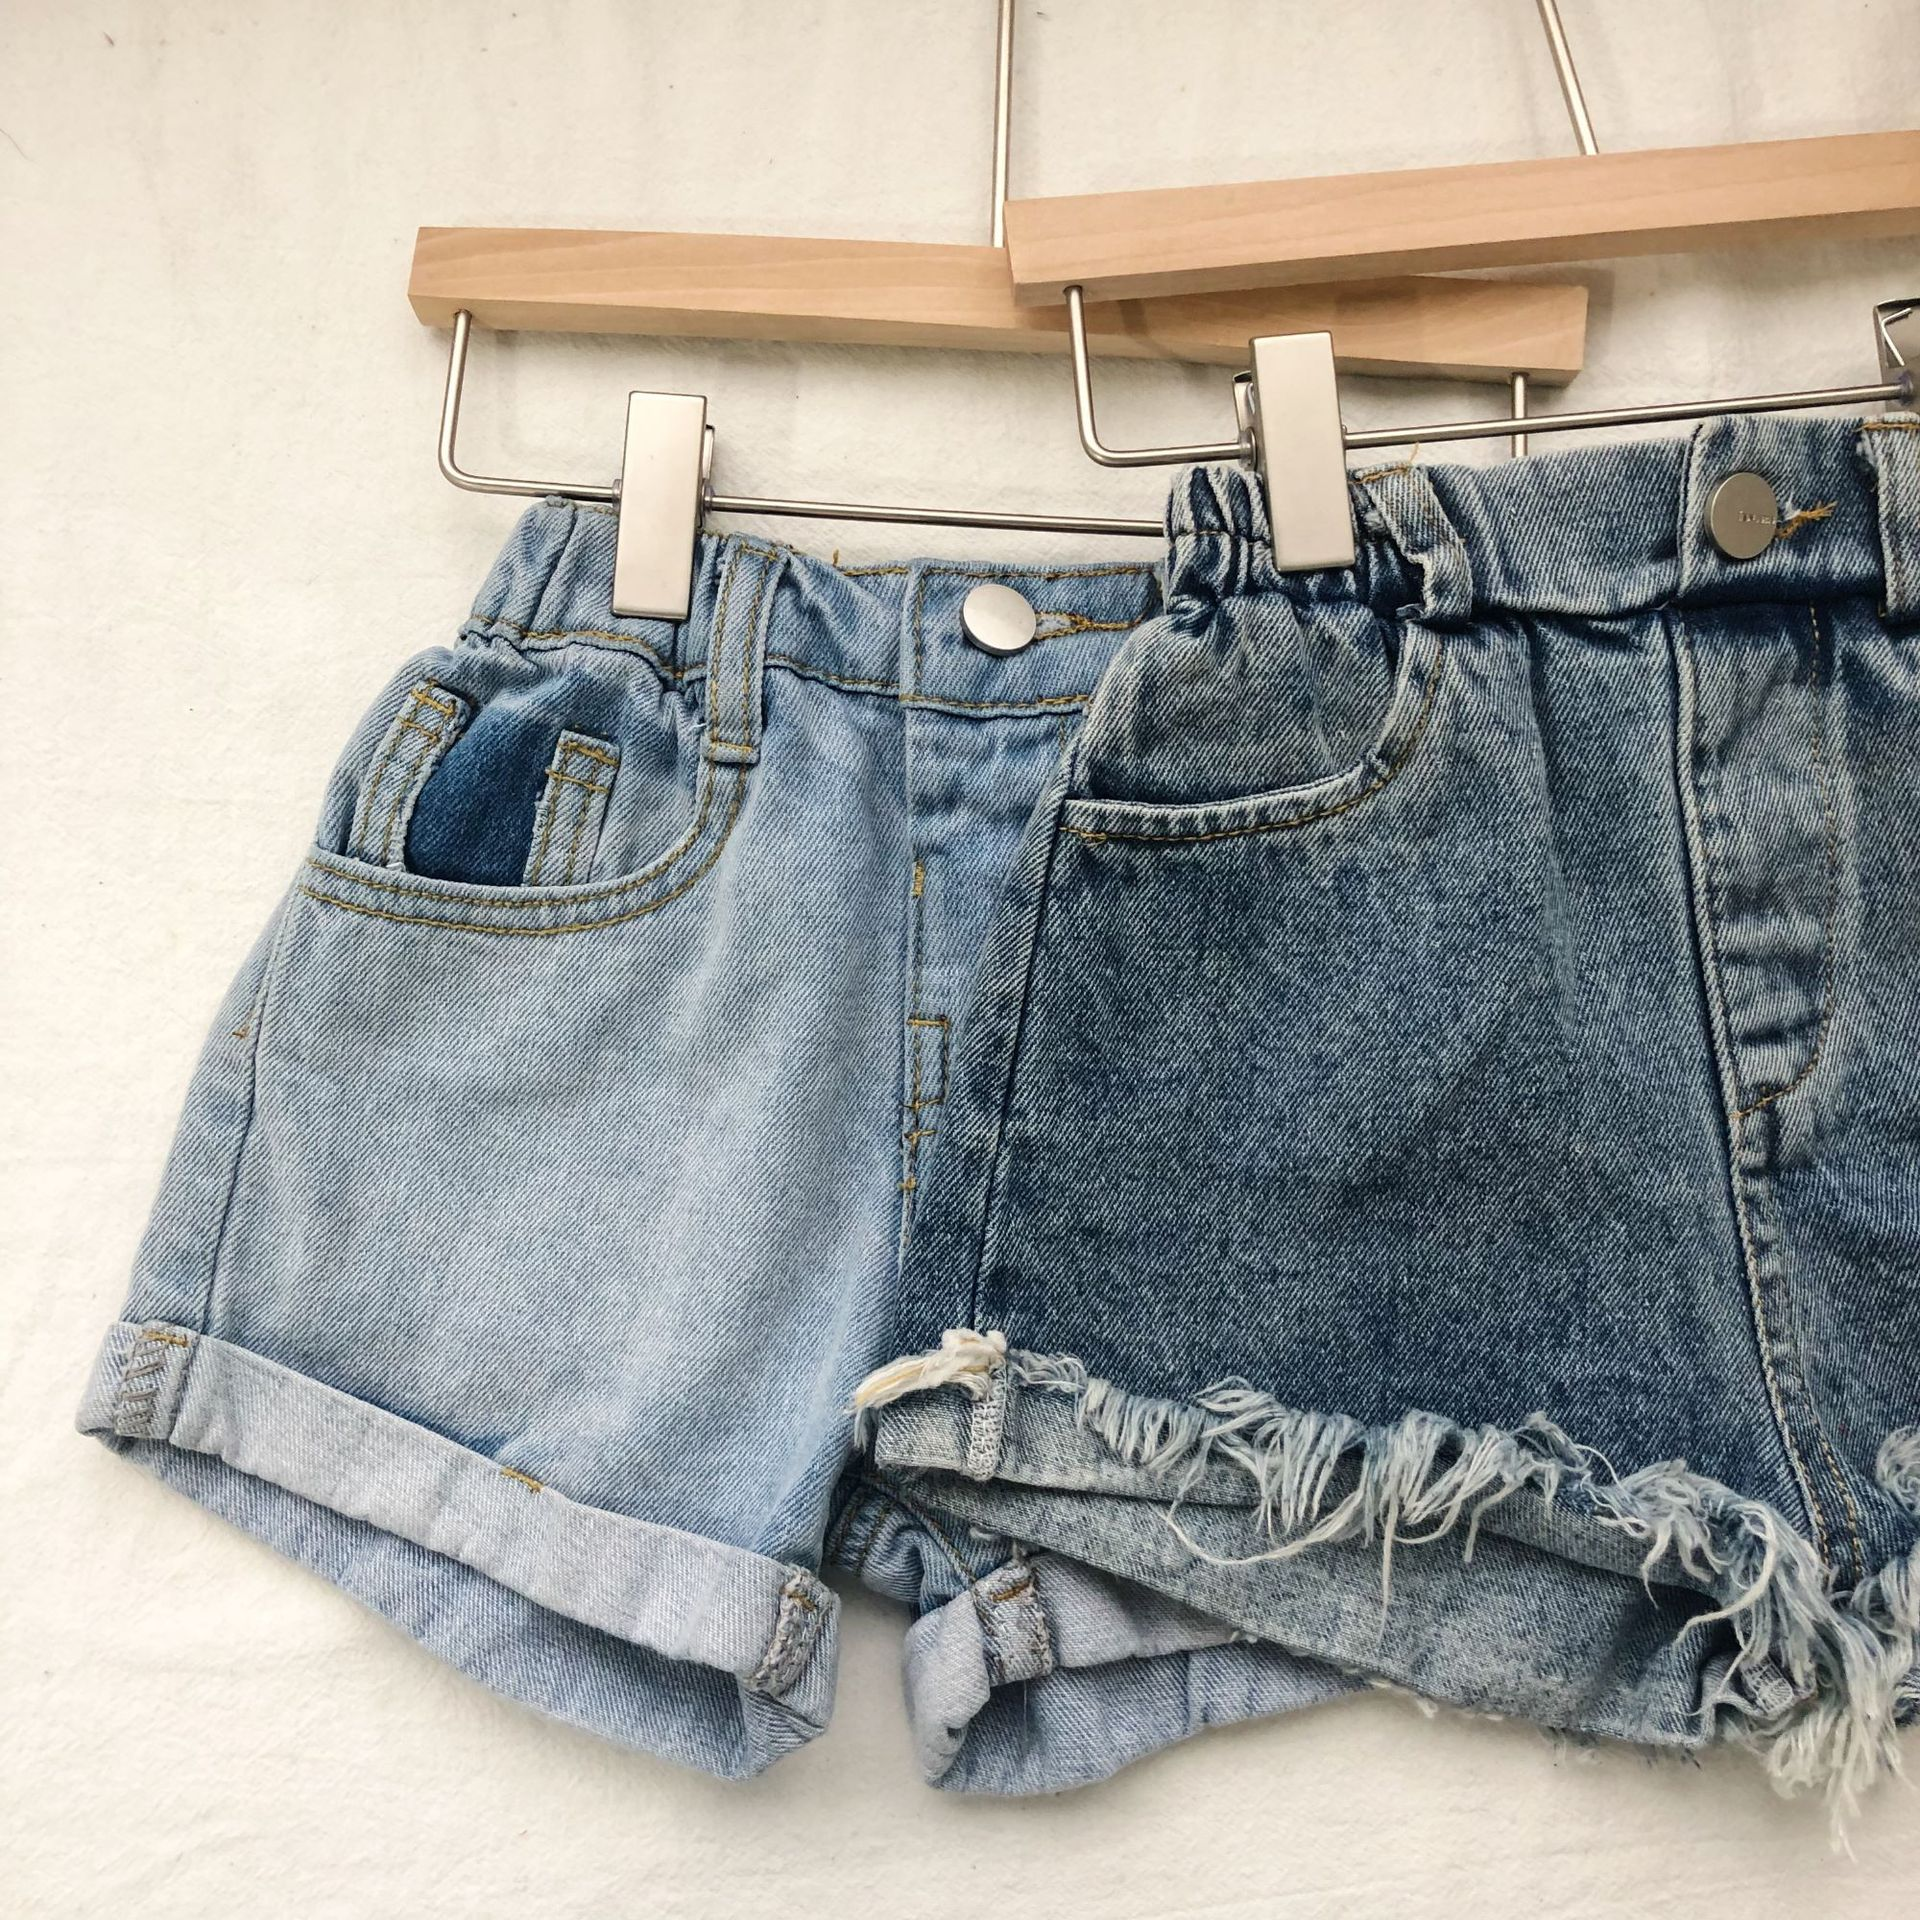 2019 Summer New Childrens Cowboy Shorts Toddler Infant Baby Boys and Girls  Hairy Jeans Kids Casual Clothes Boys Burr Trousers2019 Summer New Childrens Cowboy Shorts Toddler Infant Baby Boys and Girls  Hairy Jeans Kids Casual Clothes Boys Burr Trousers